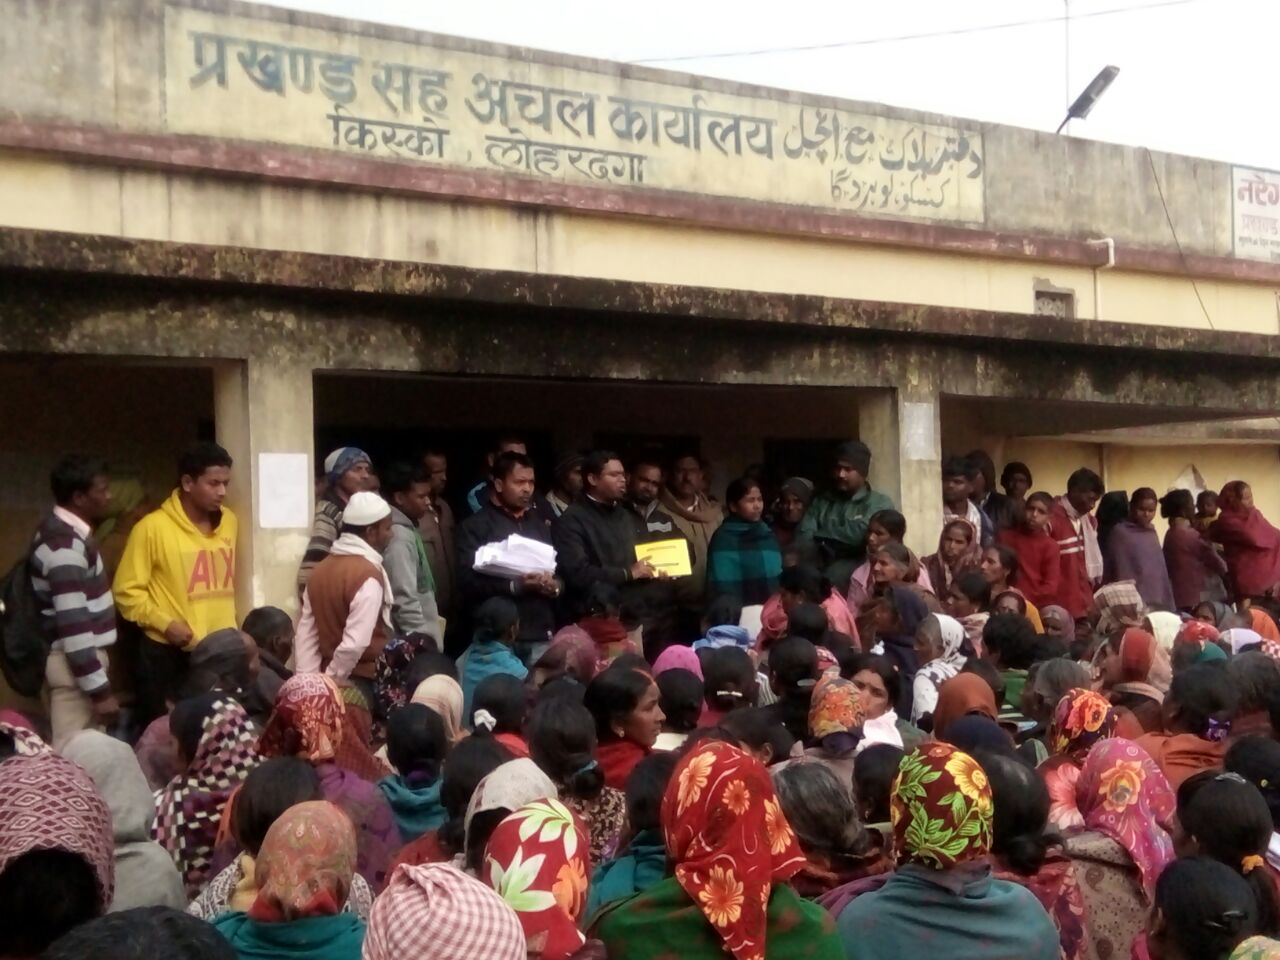 Workers protest outside the Kisko Block Office in Lohardaga, Jharkhand demanding delayed wage payments under MGNREGA. Credit: Nitish Kumar Badal